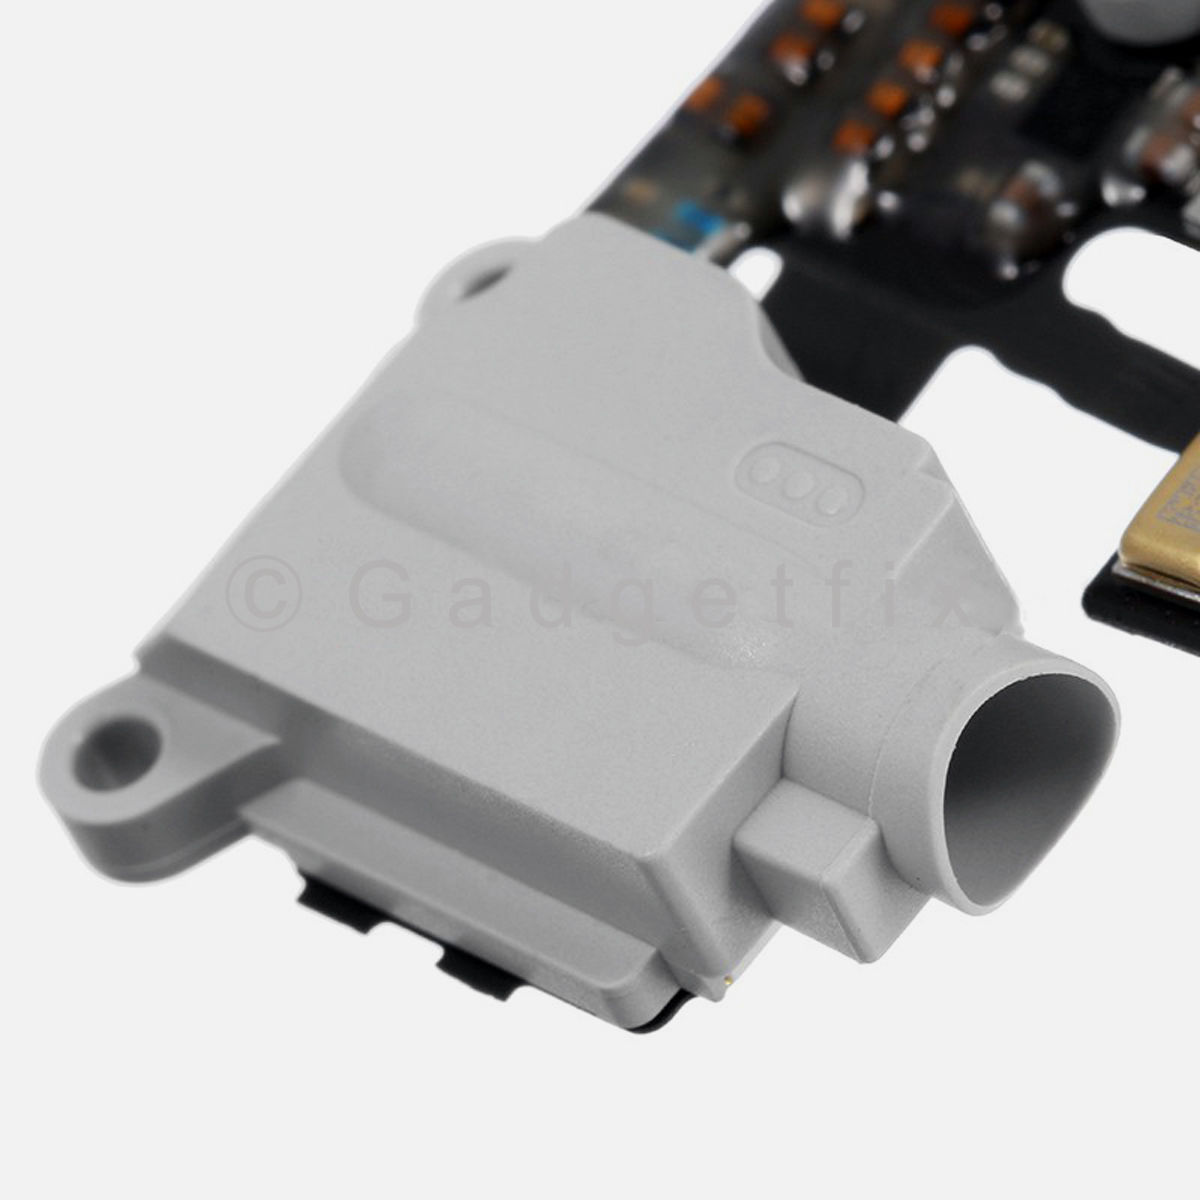 How To Fix Your Iphone Charger Port